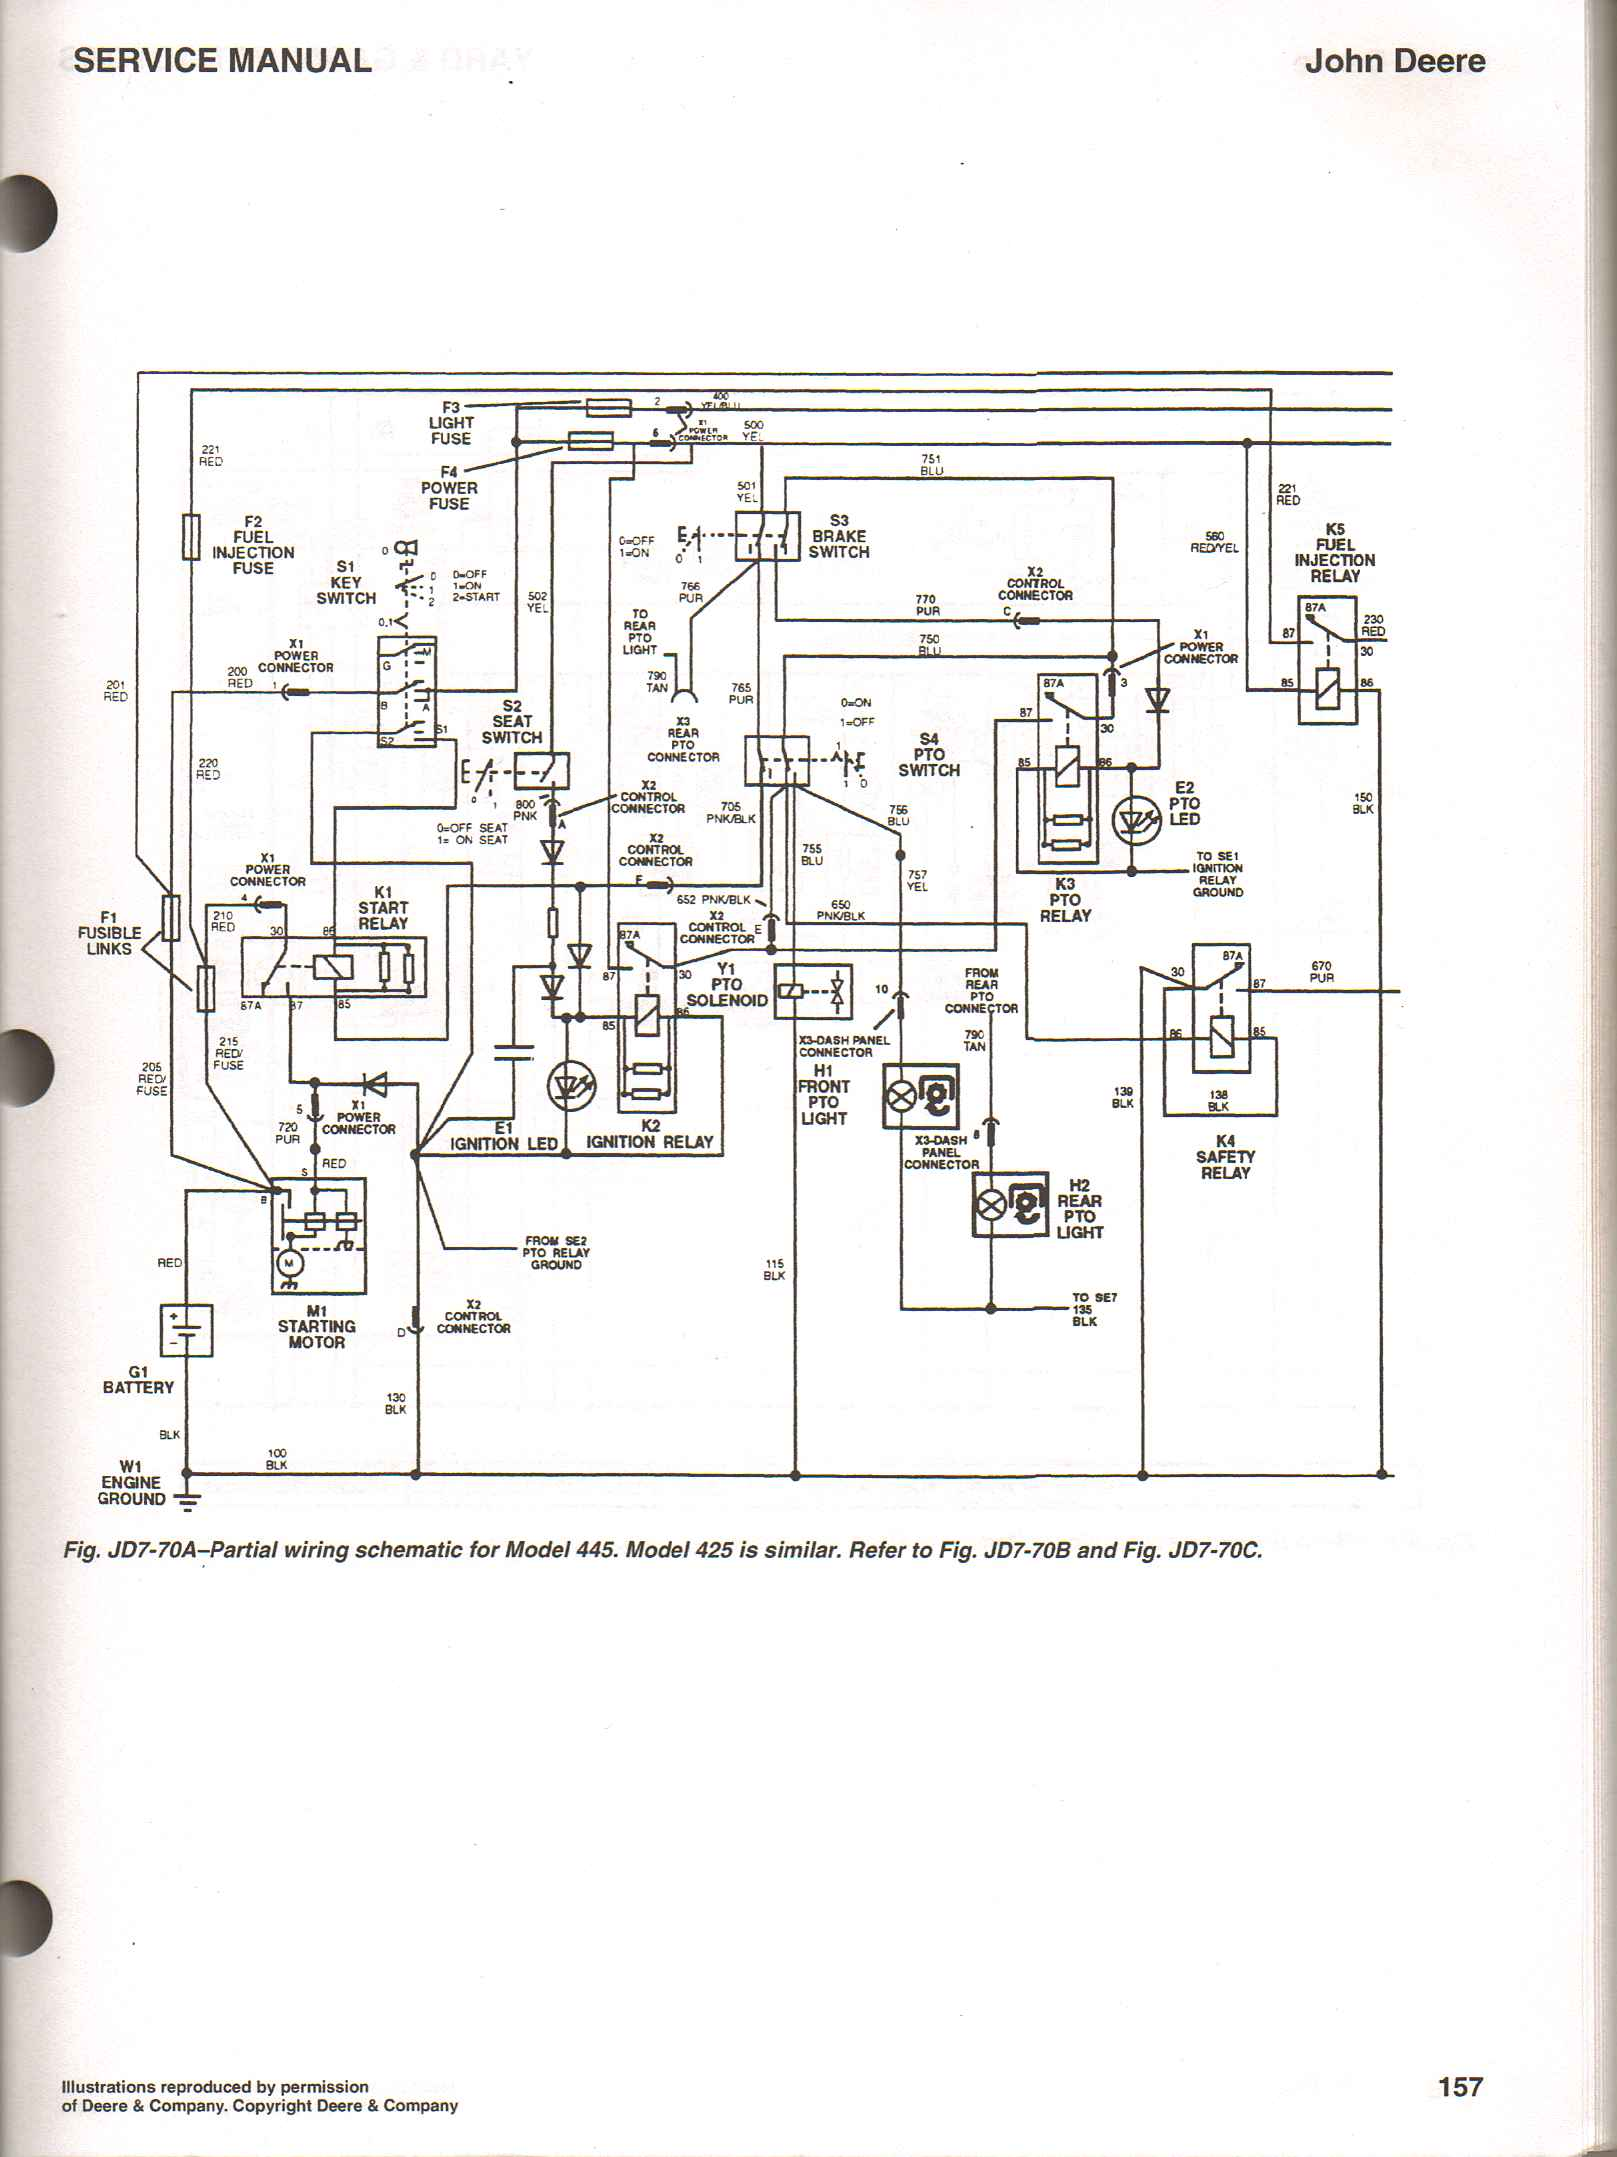 John Deere 6430 Wiring Schematic Diagram Schematics 330c Lc Fuse Box I Have A Tractor Model 425 Was Having Trouble Starting It Ignition Switch